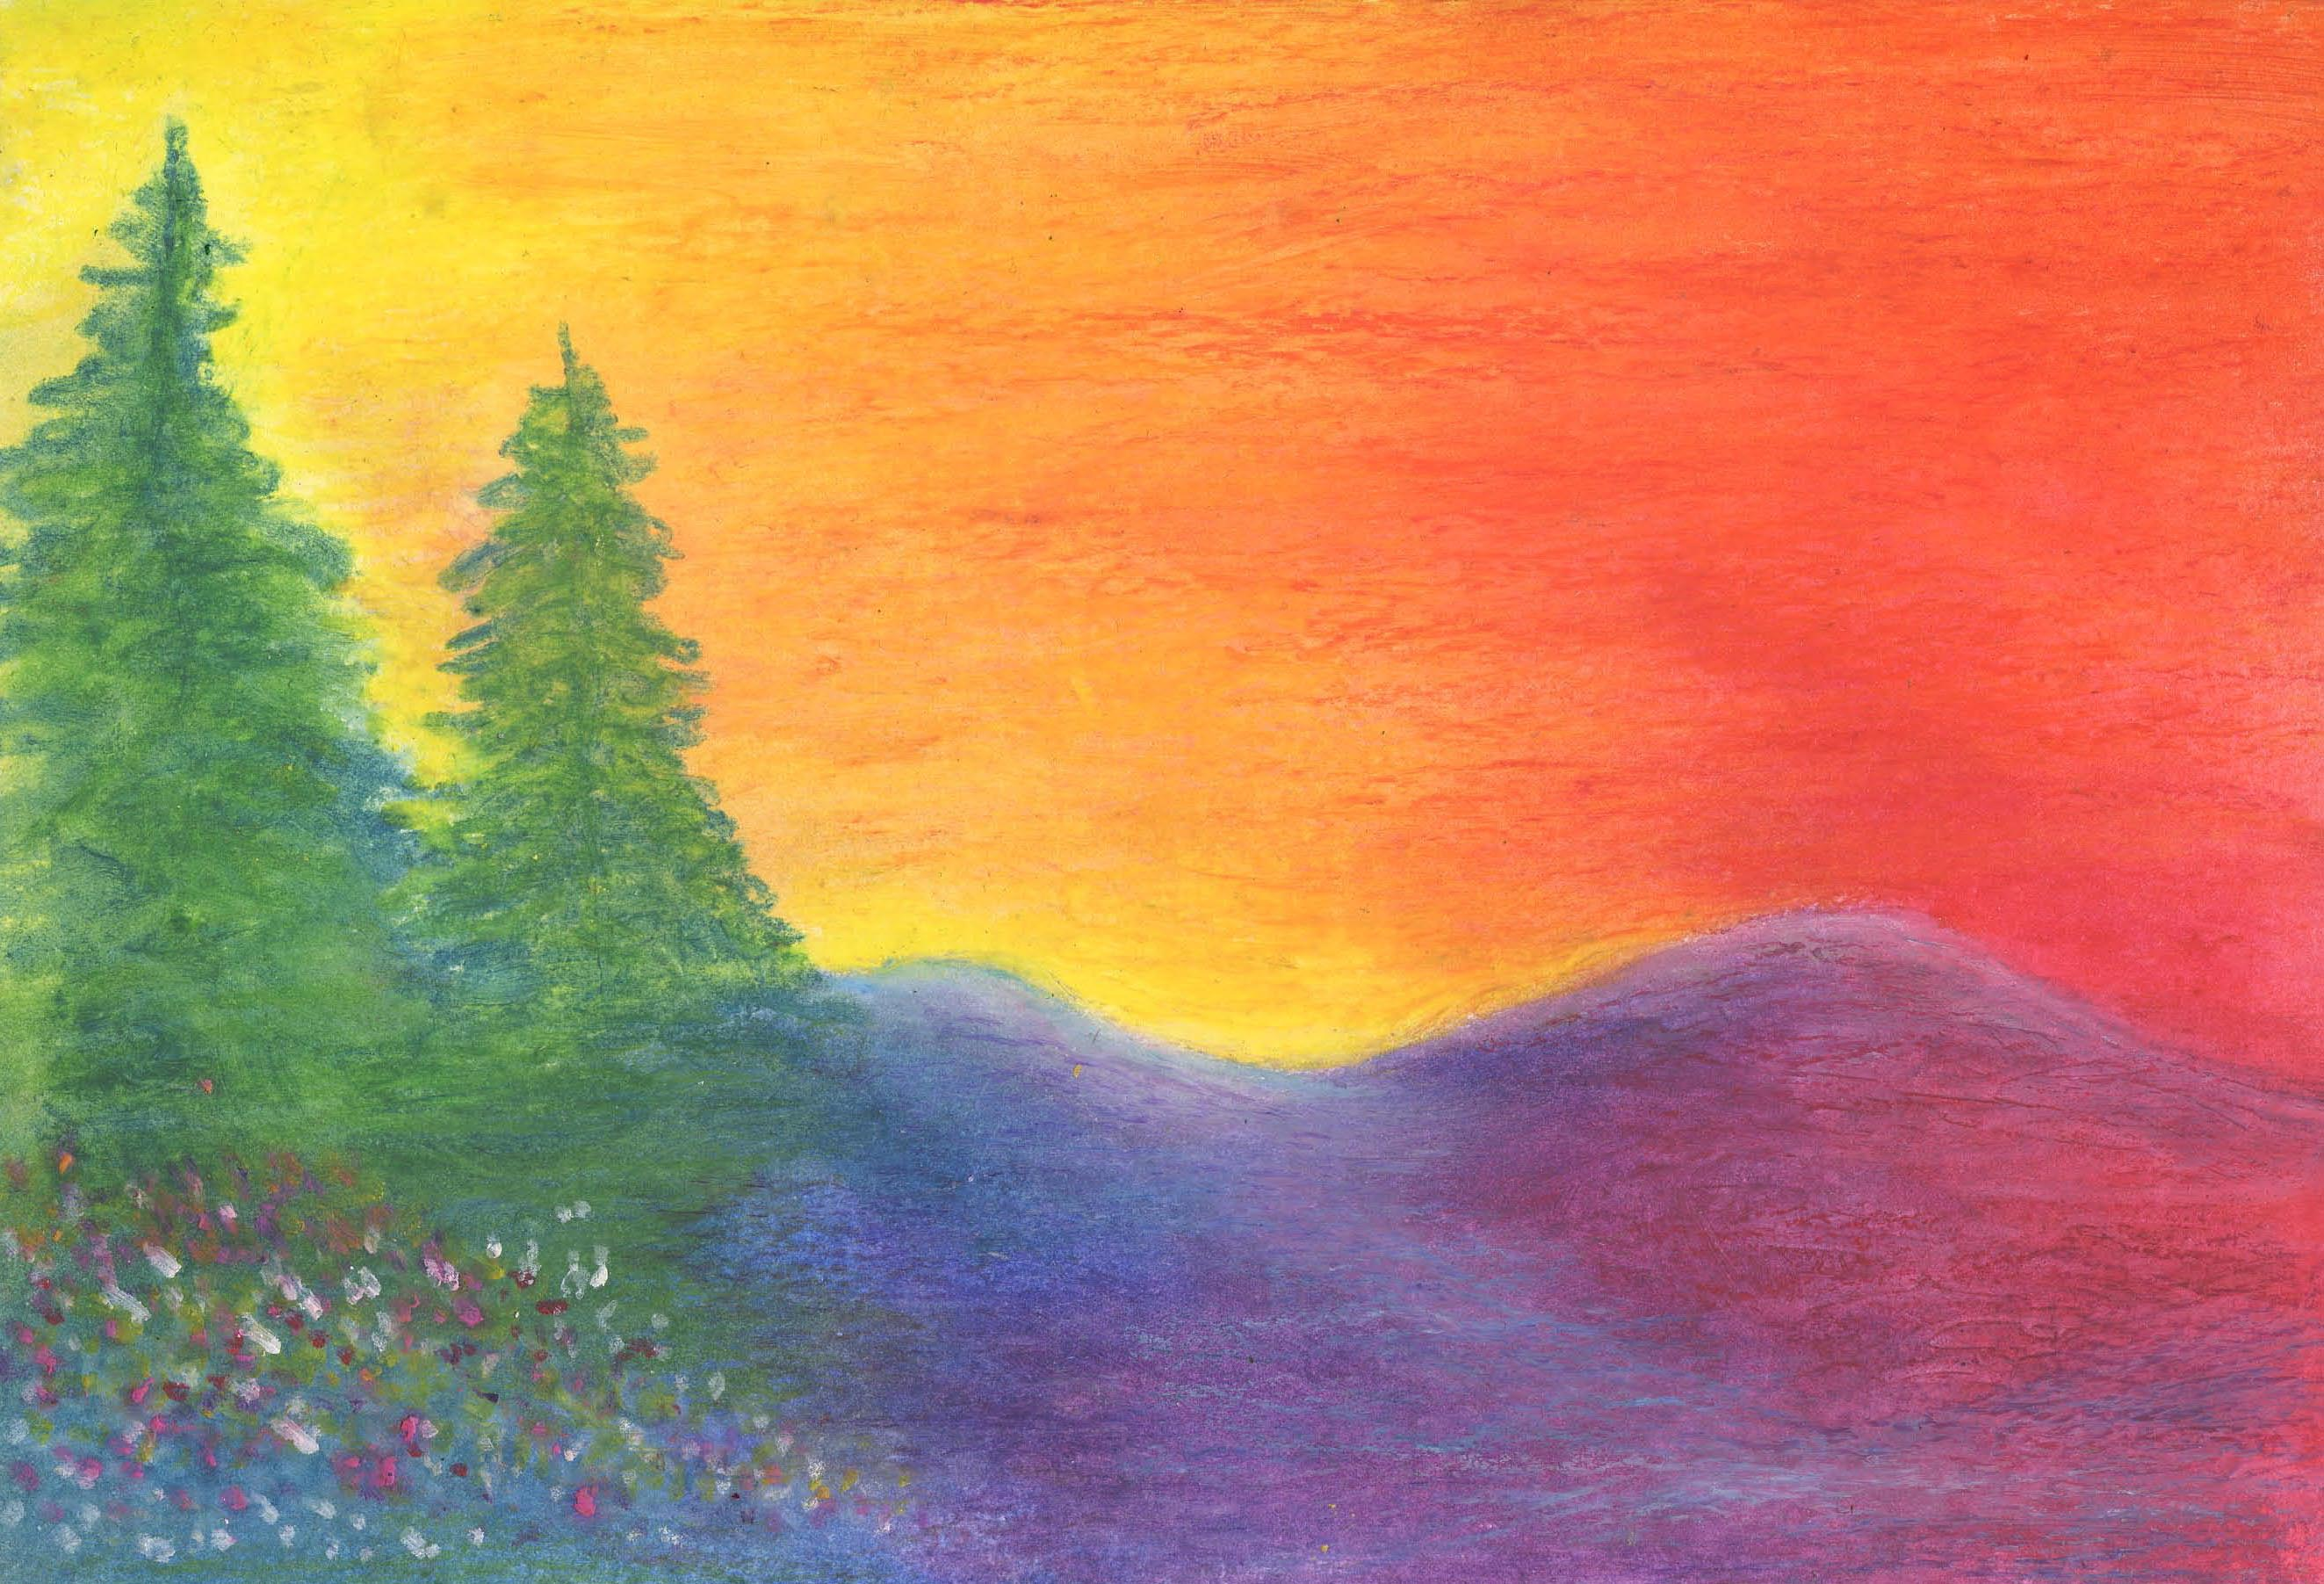 Sunrise in Oregon - Oil Pastel - 6 X 9 - $80